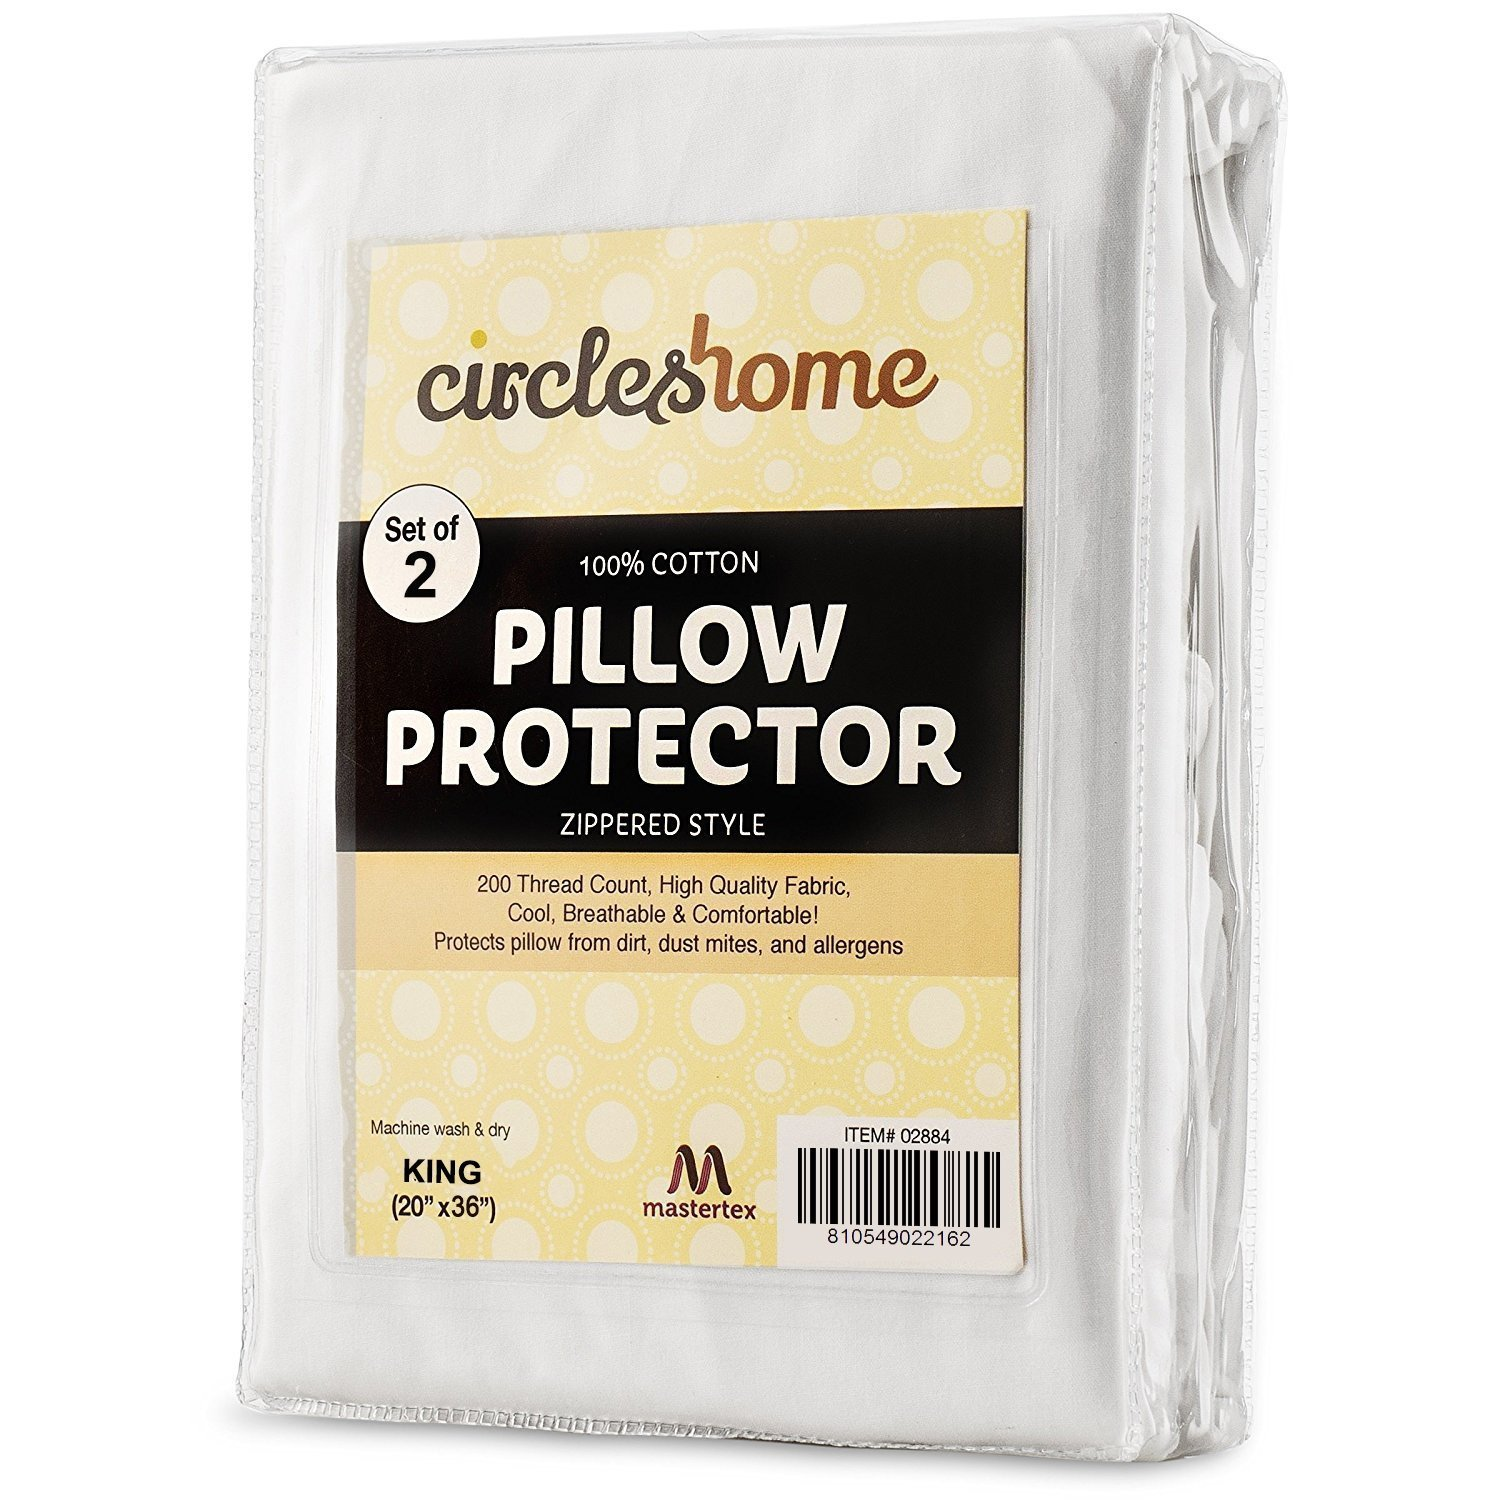 Mastertex Zippered Pillow Protectors 100% Cotton, Breathable & Quiet (2 Pack) White Pillow Covers Protects from Dirt, Dust Mites & Allergens (King - Set of 2 - 20x36)